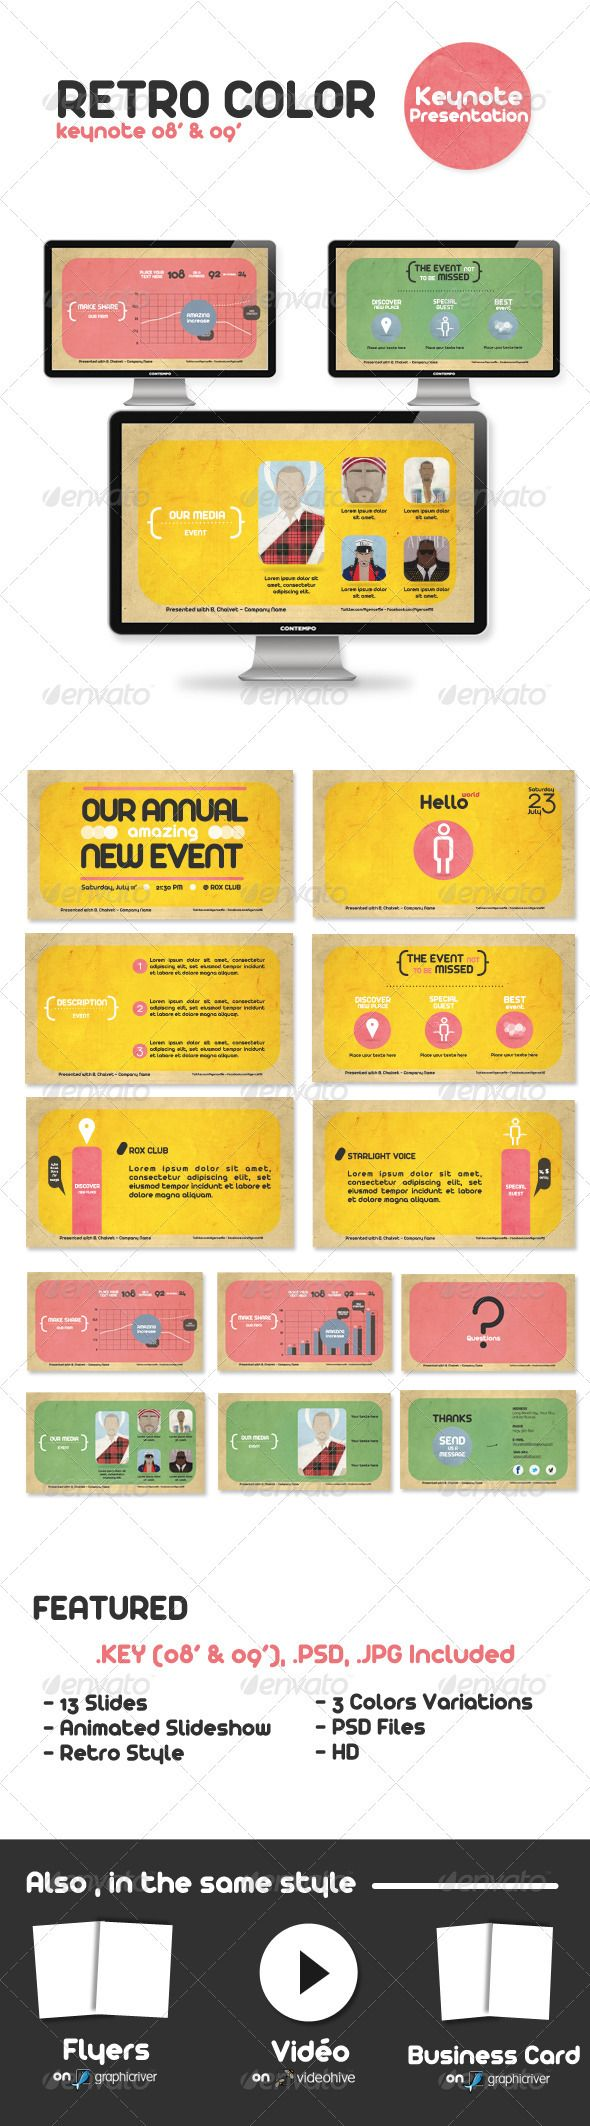 Retro Color Keynote Presentation - GraphicRiver Item for Sale